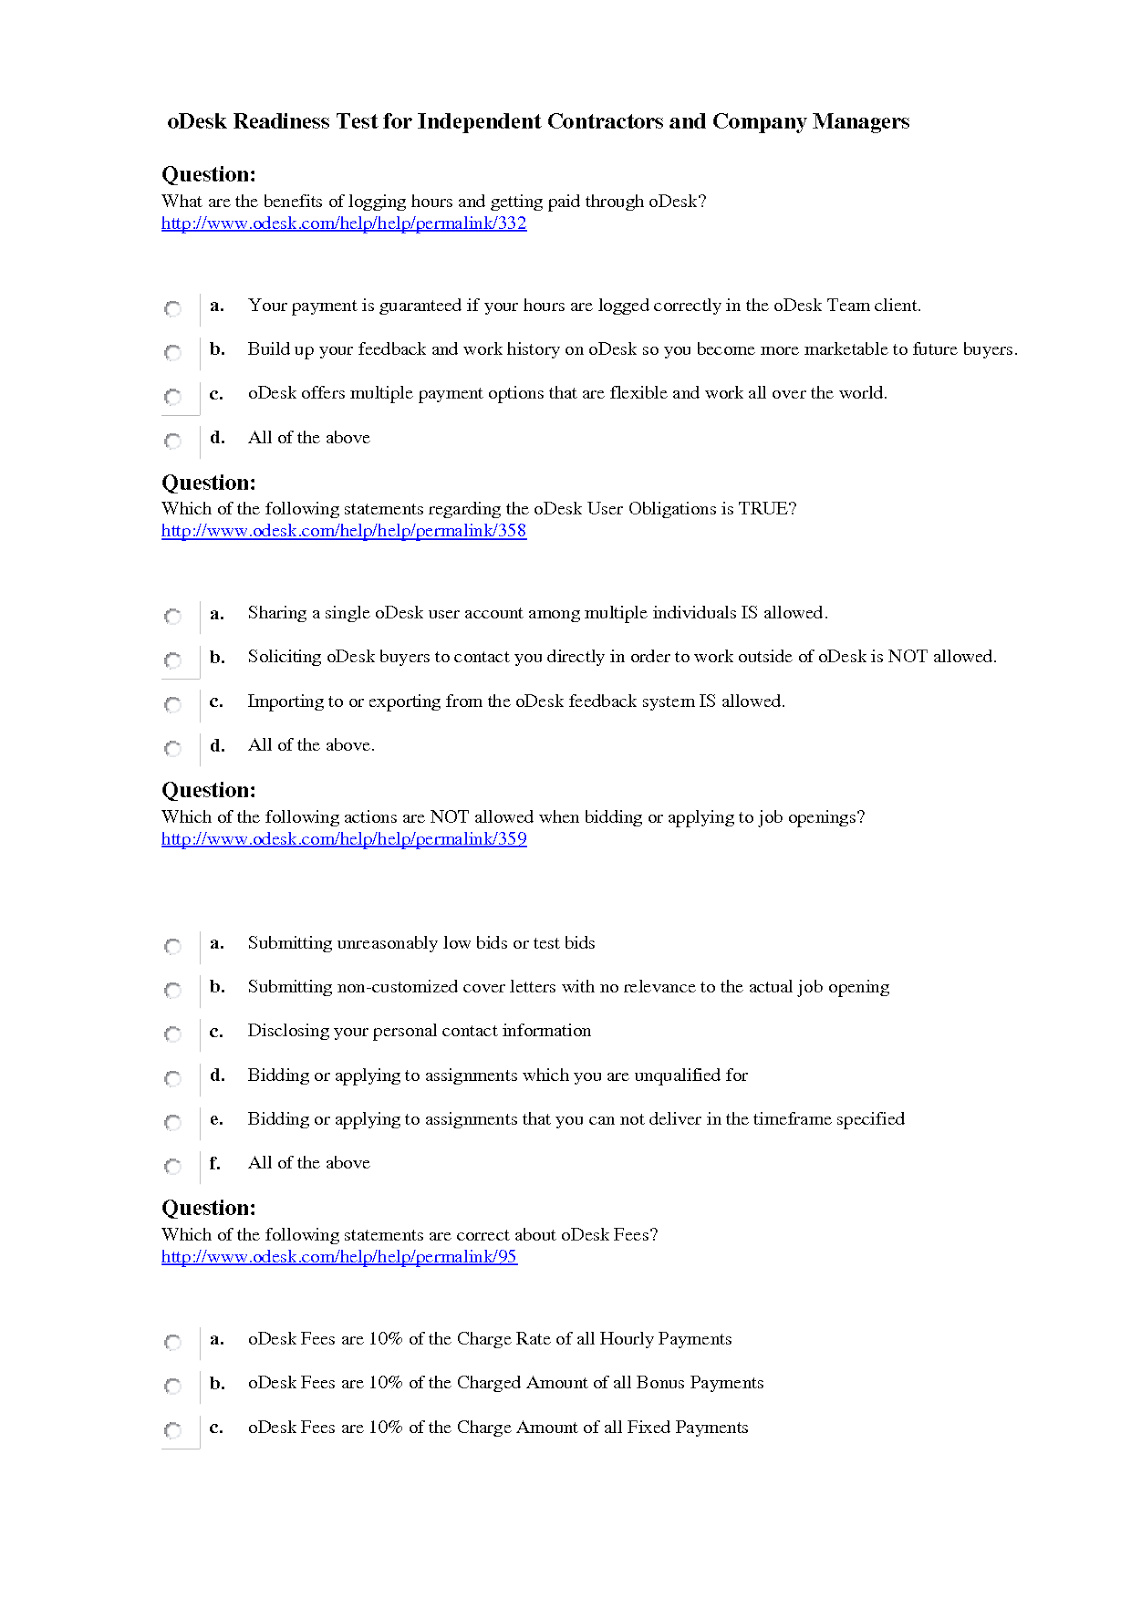 Samples of cover letter for odesk